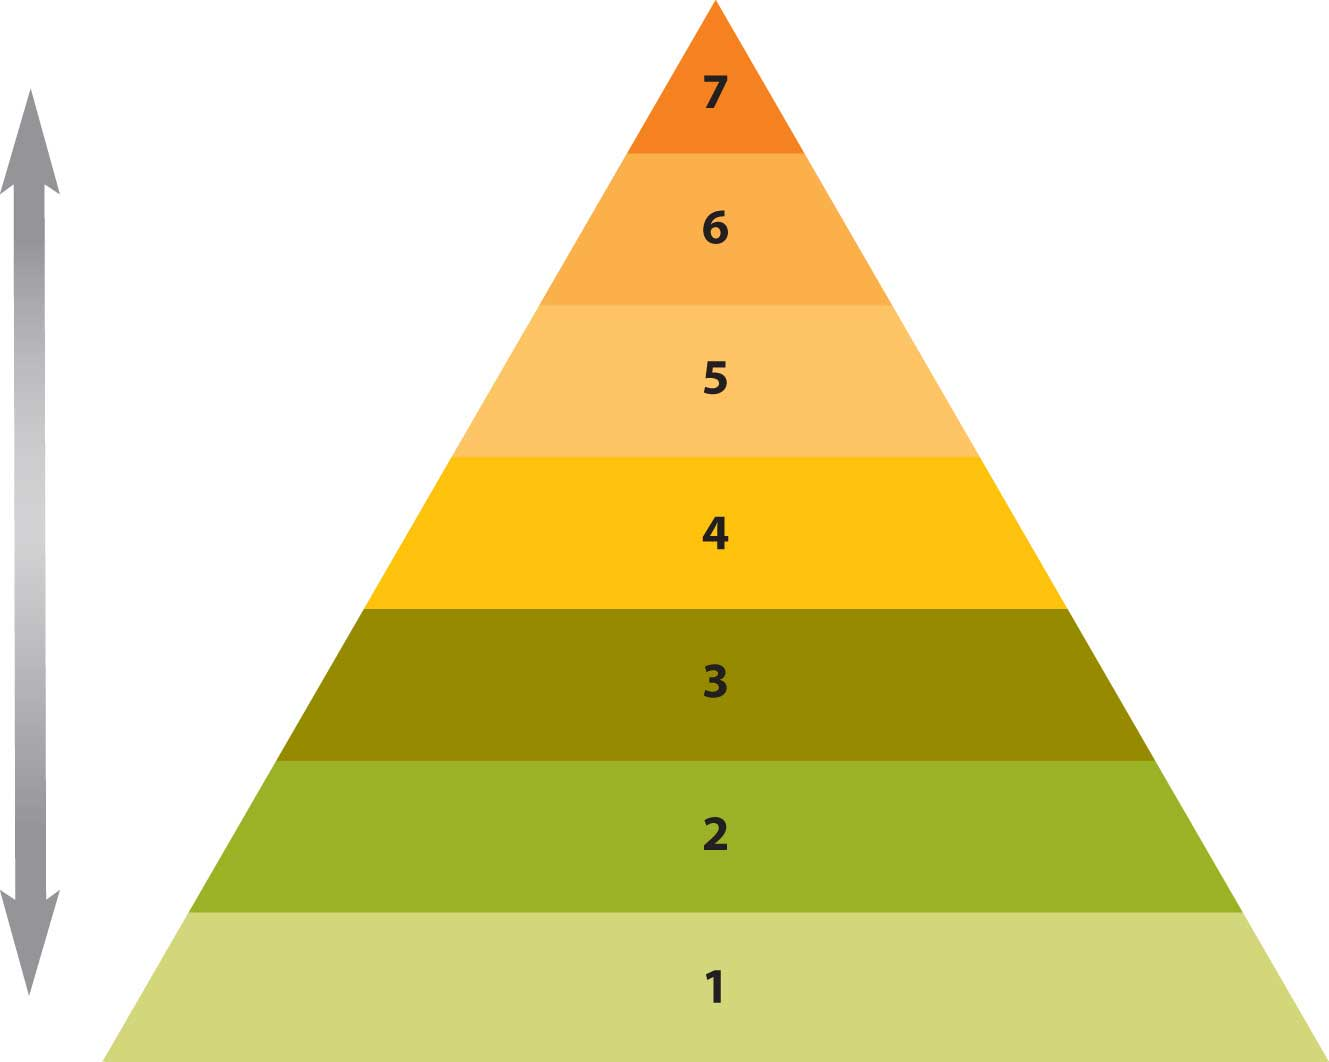 Maslow's Hierarchy. A triangle with 1 at the bottom, and 7 at the top